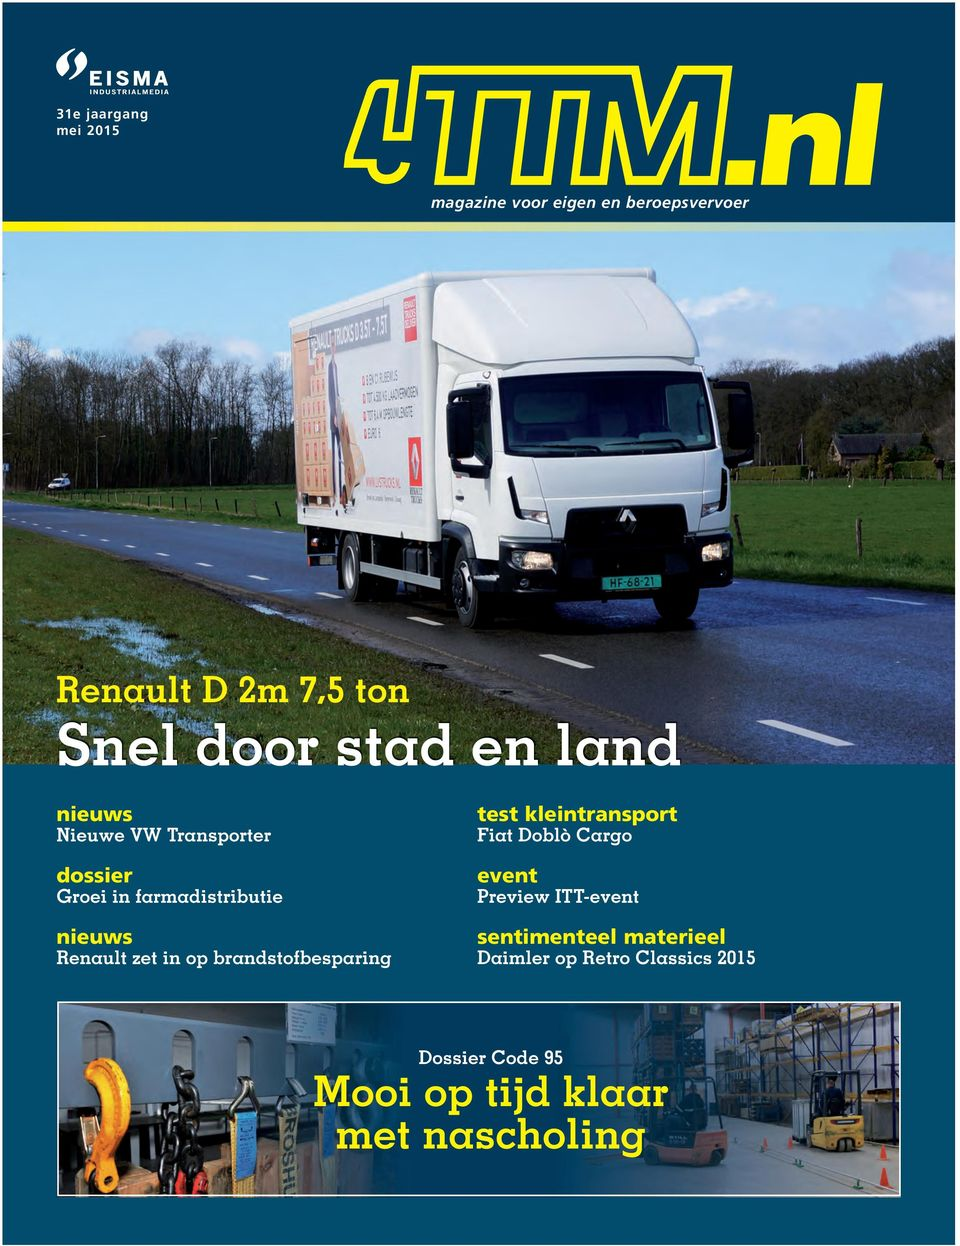 zet in op brandstofbesparing test kleintransport Fiat Doblò Cargo event Preview ITT-event